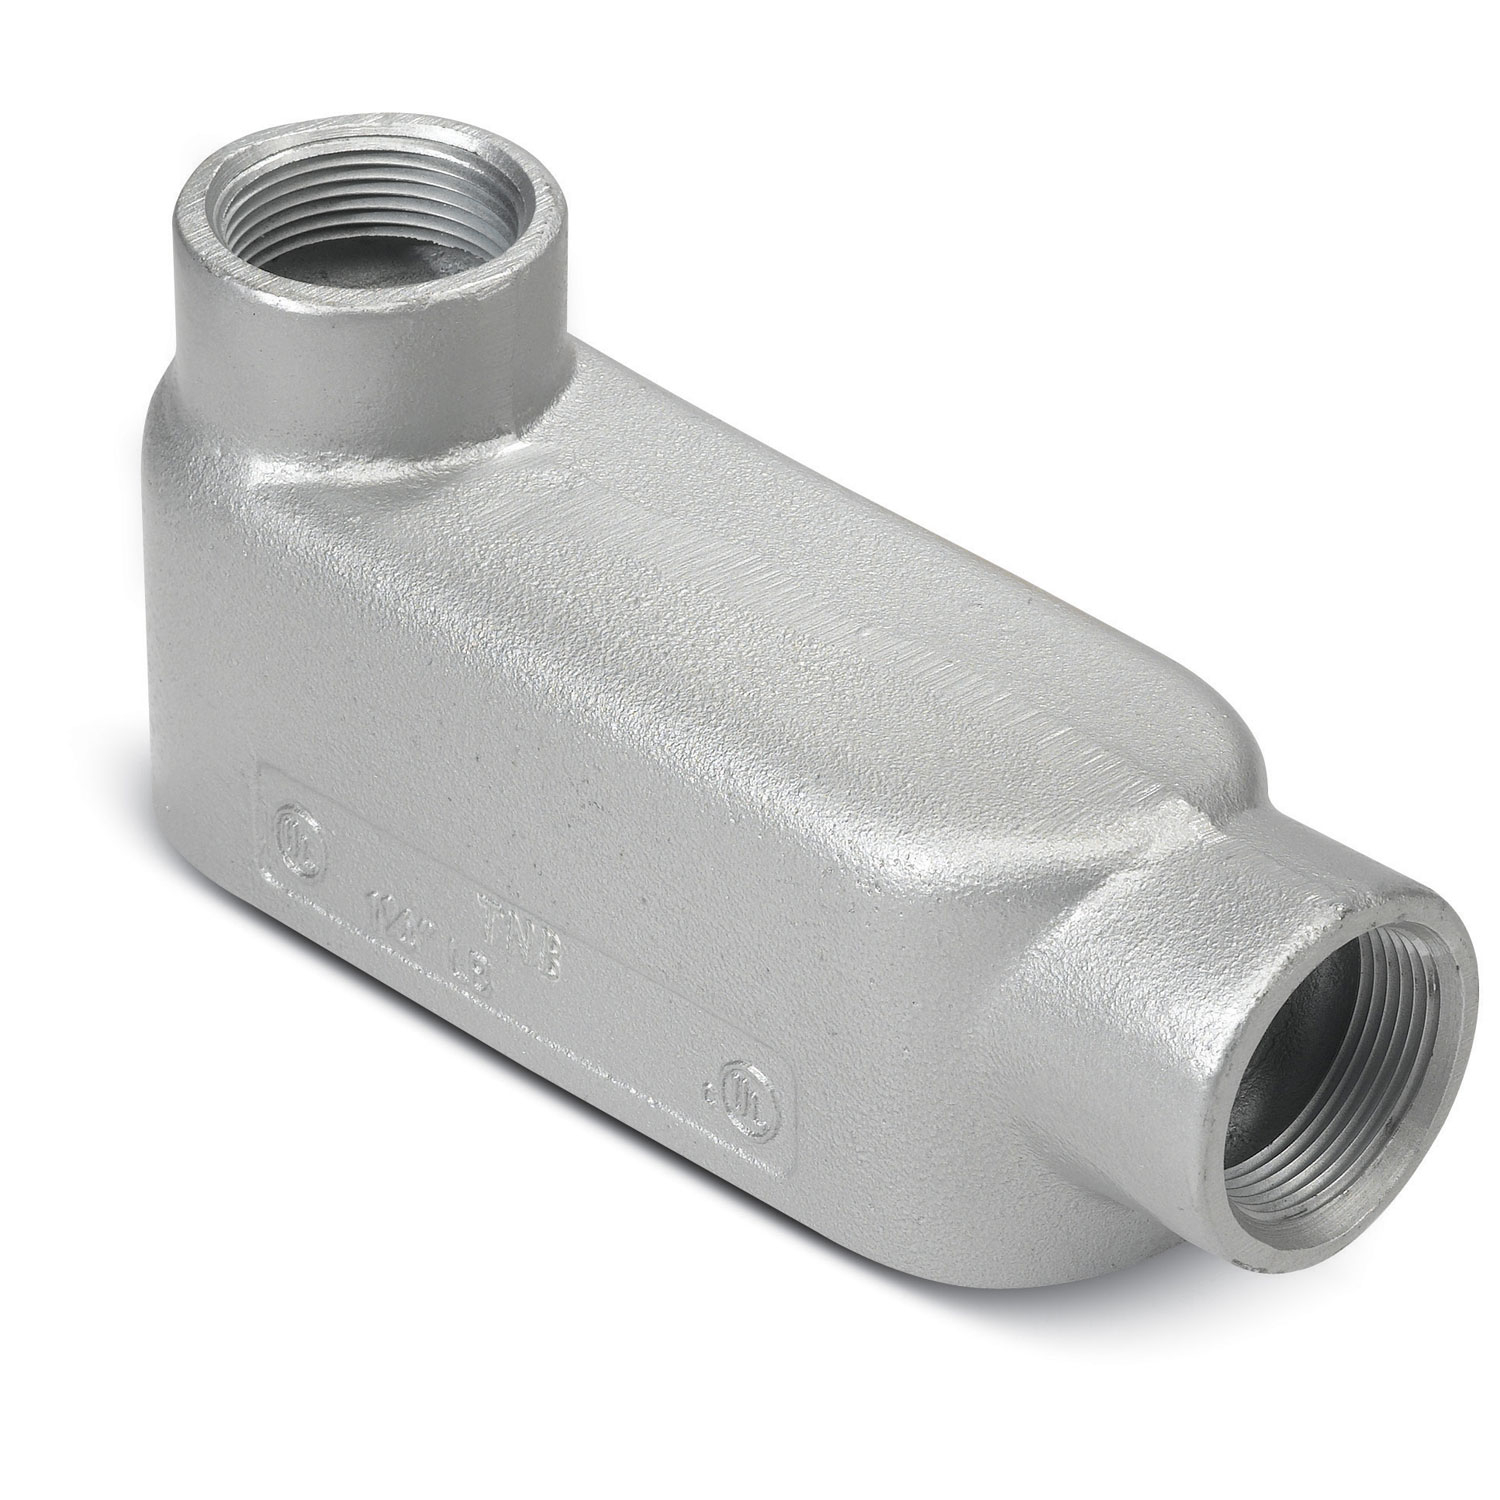 1/2 INCH SERIES 35 CONDUIT BODIES